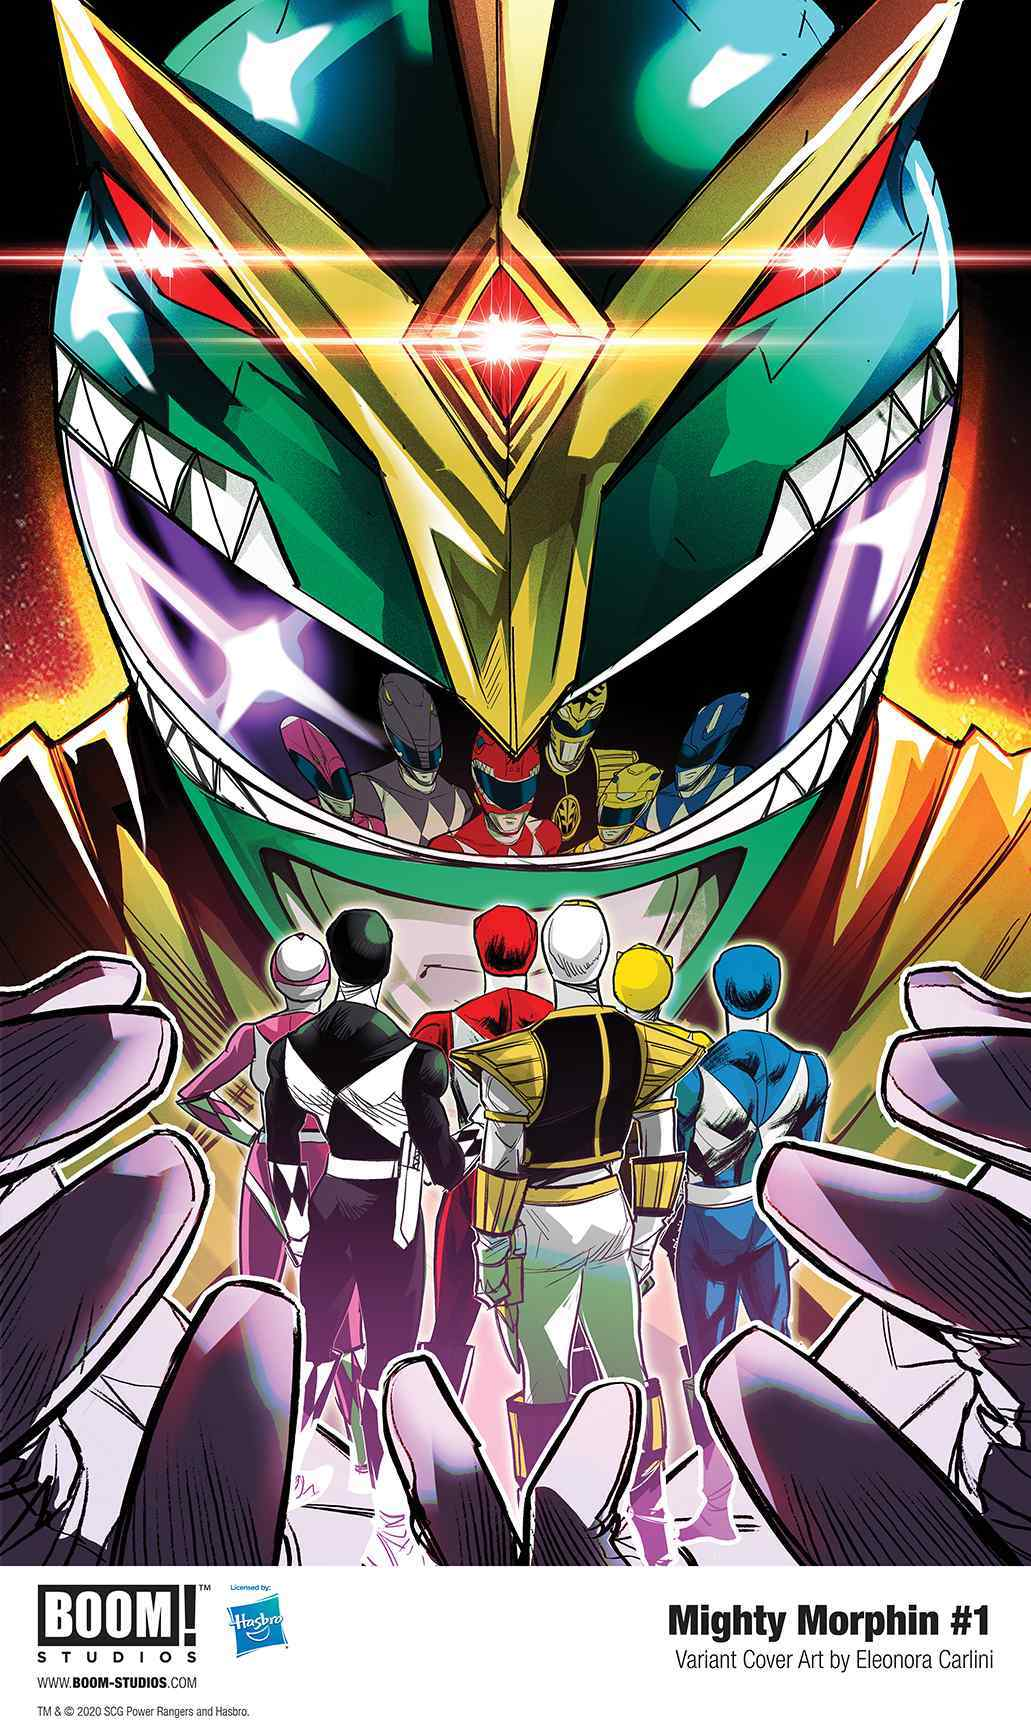 New Power Rangers : power, rangers, Power, Rangers, Reveals, Mighty, Morphin, Series, Mysterious, Green, Ranger, (Exclusive)